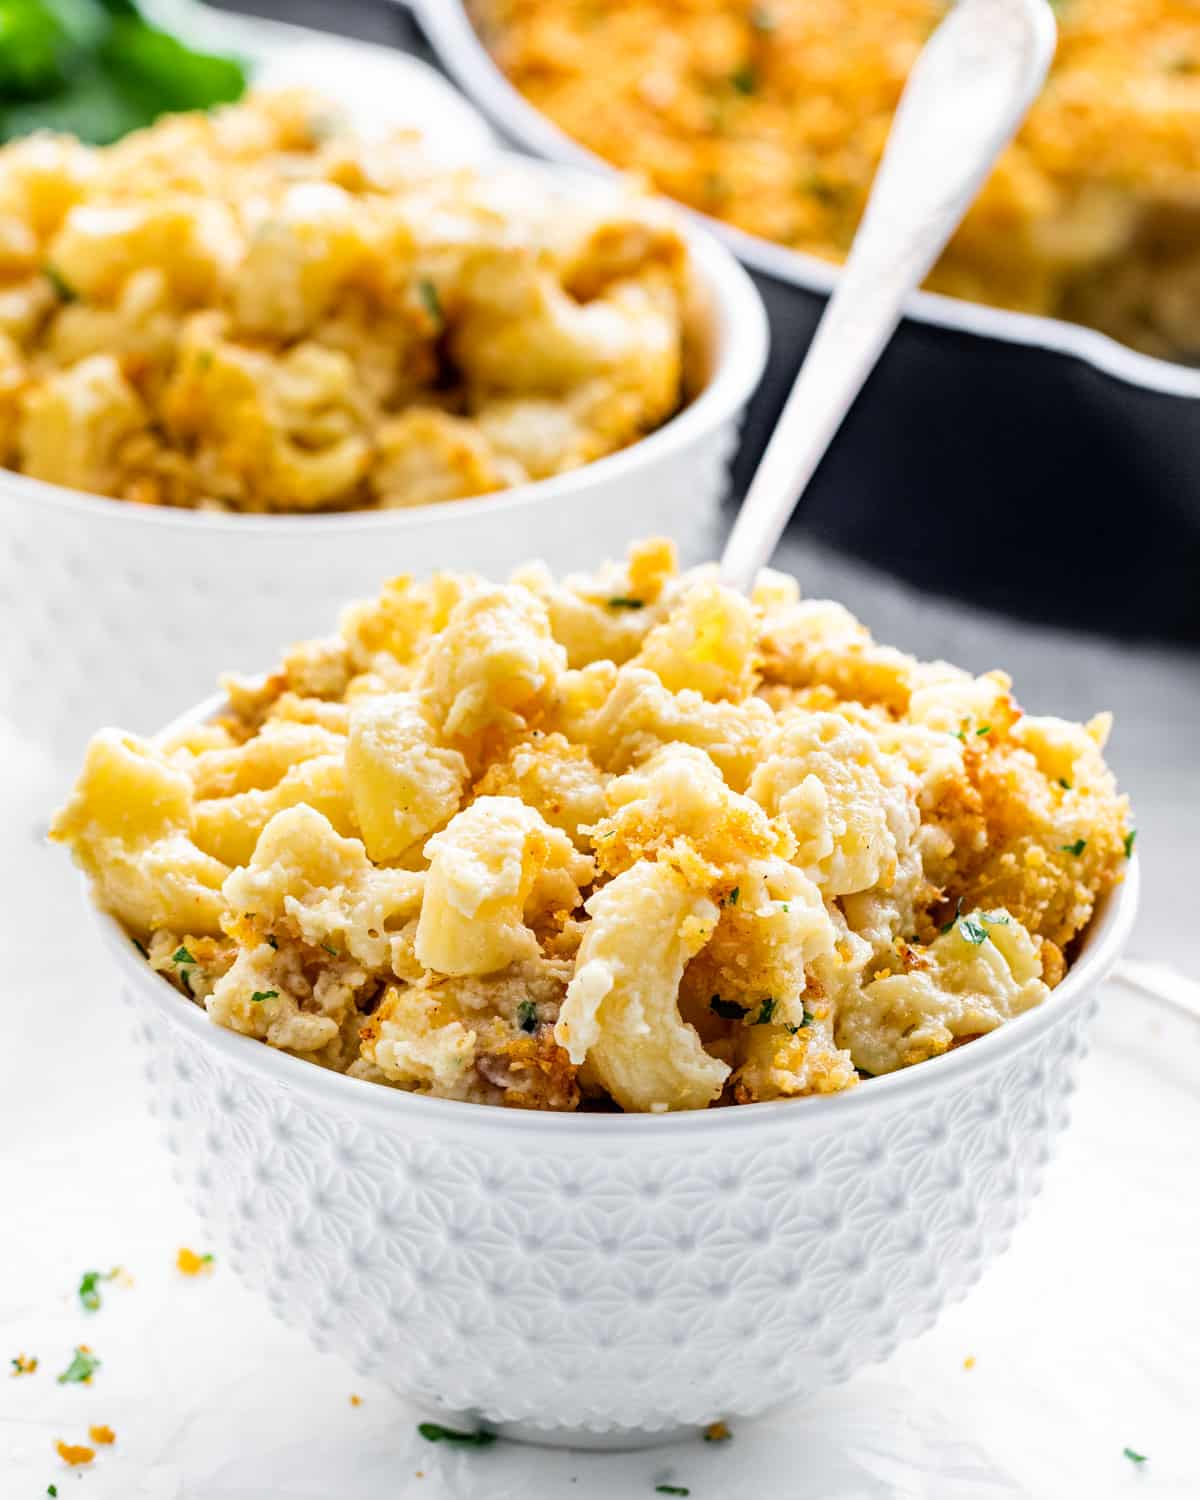 a white bowl filled with baked mac and cheese with a fork inside